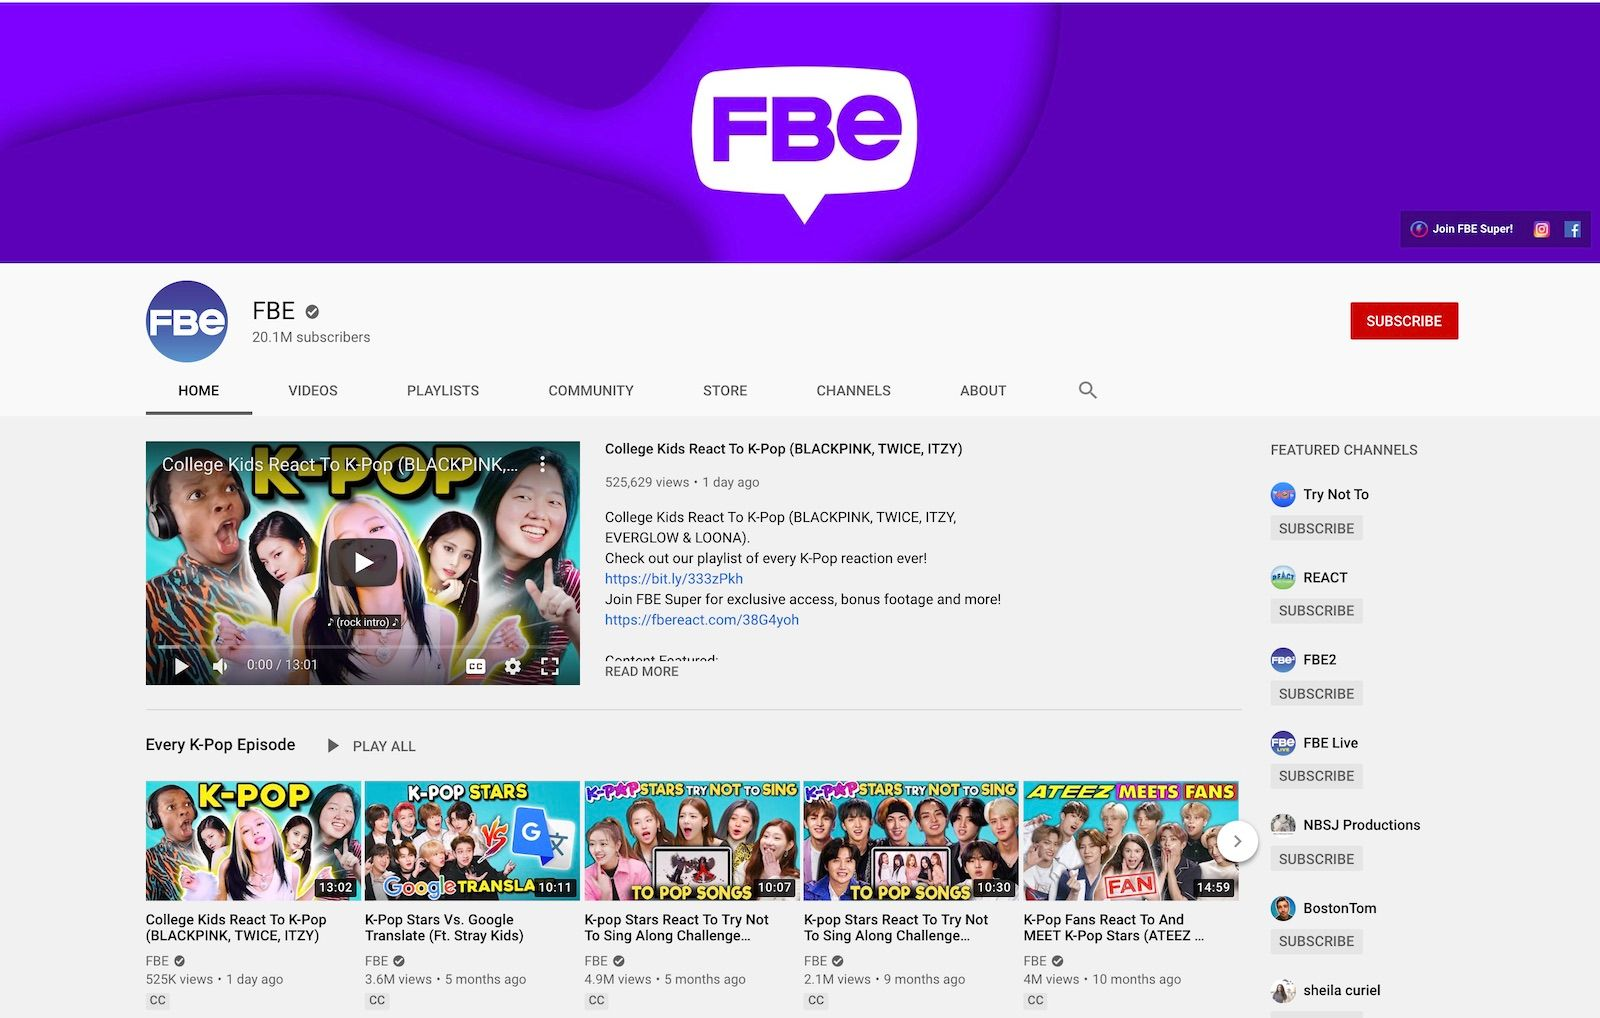 FINE BROTHERS ENTERTAINMENT YouTube